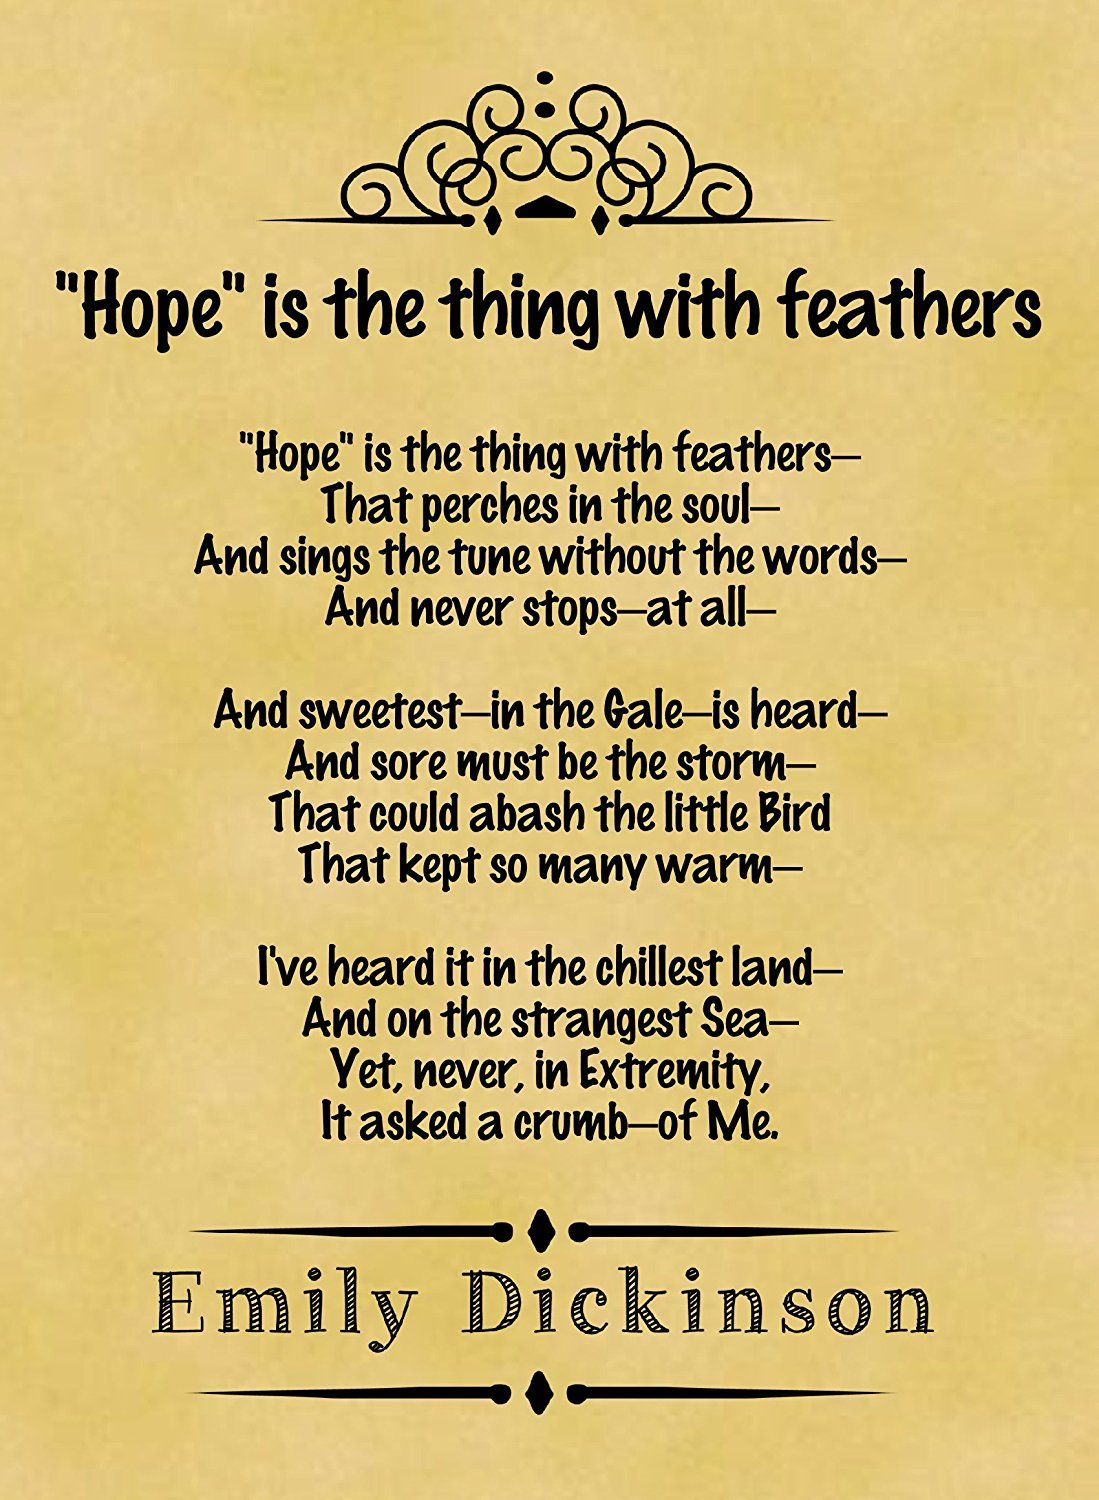 A4 Size Parchment Poster Classic Poem Emily Dickinson Hope Is The Thing With Feathers Amazon Co Classic Poems Hope Is The Thing With Feathers Dickinson Poems Poems about trust and love. a4 size parchment poster classic poem